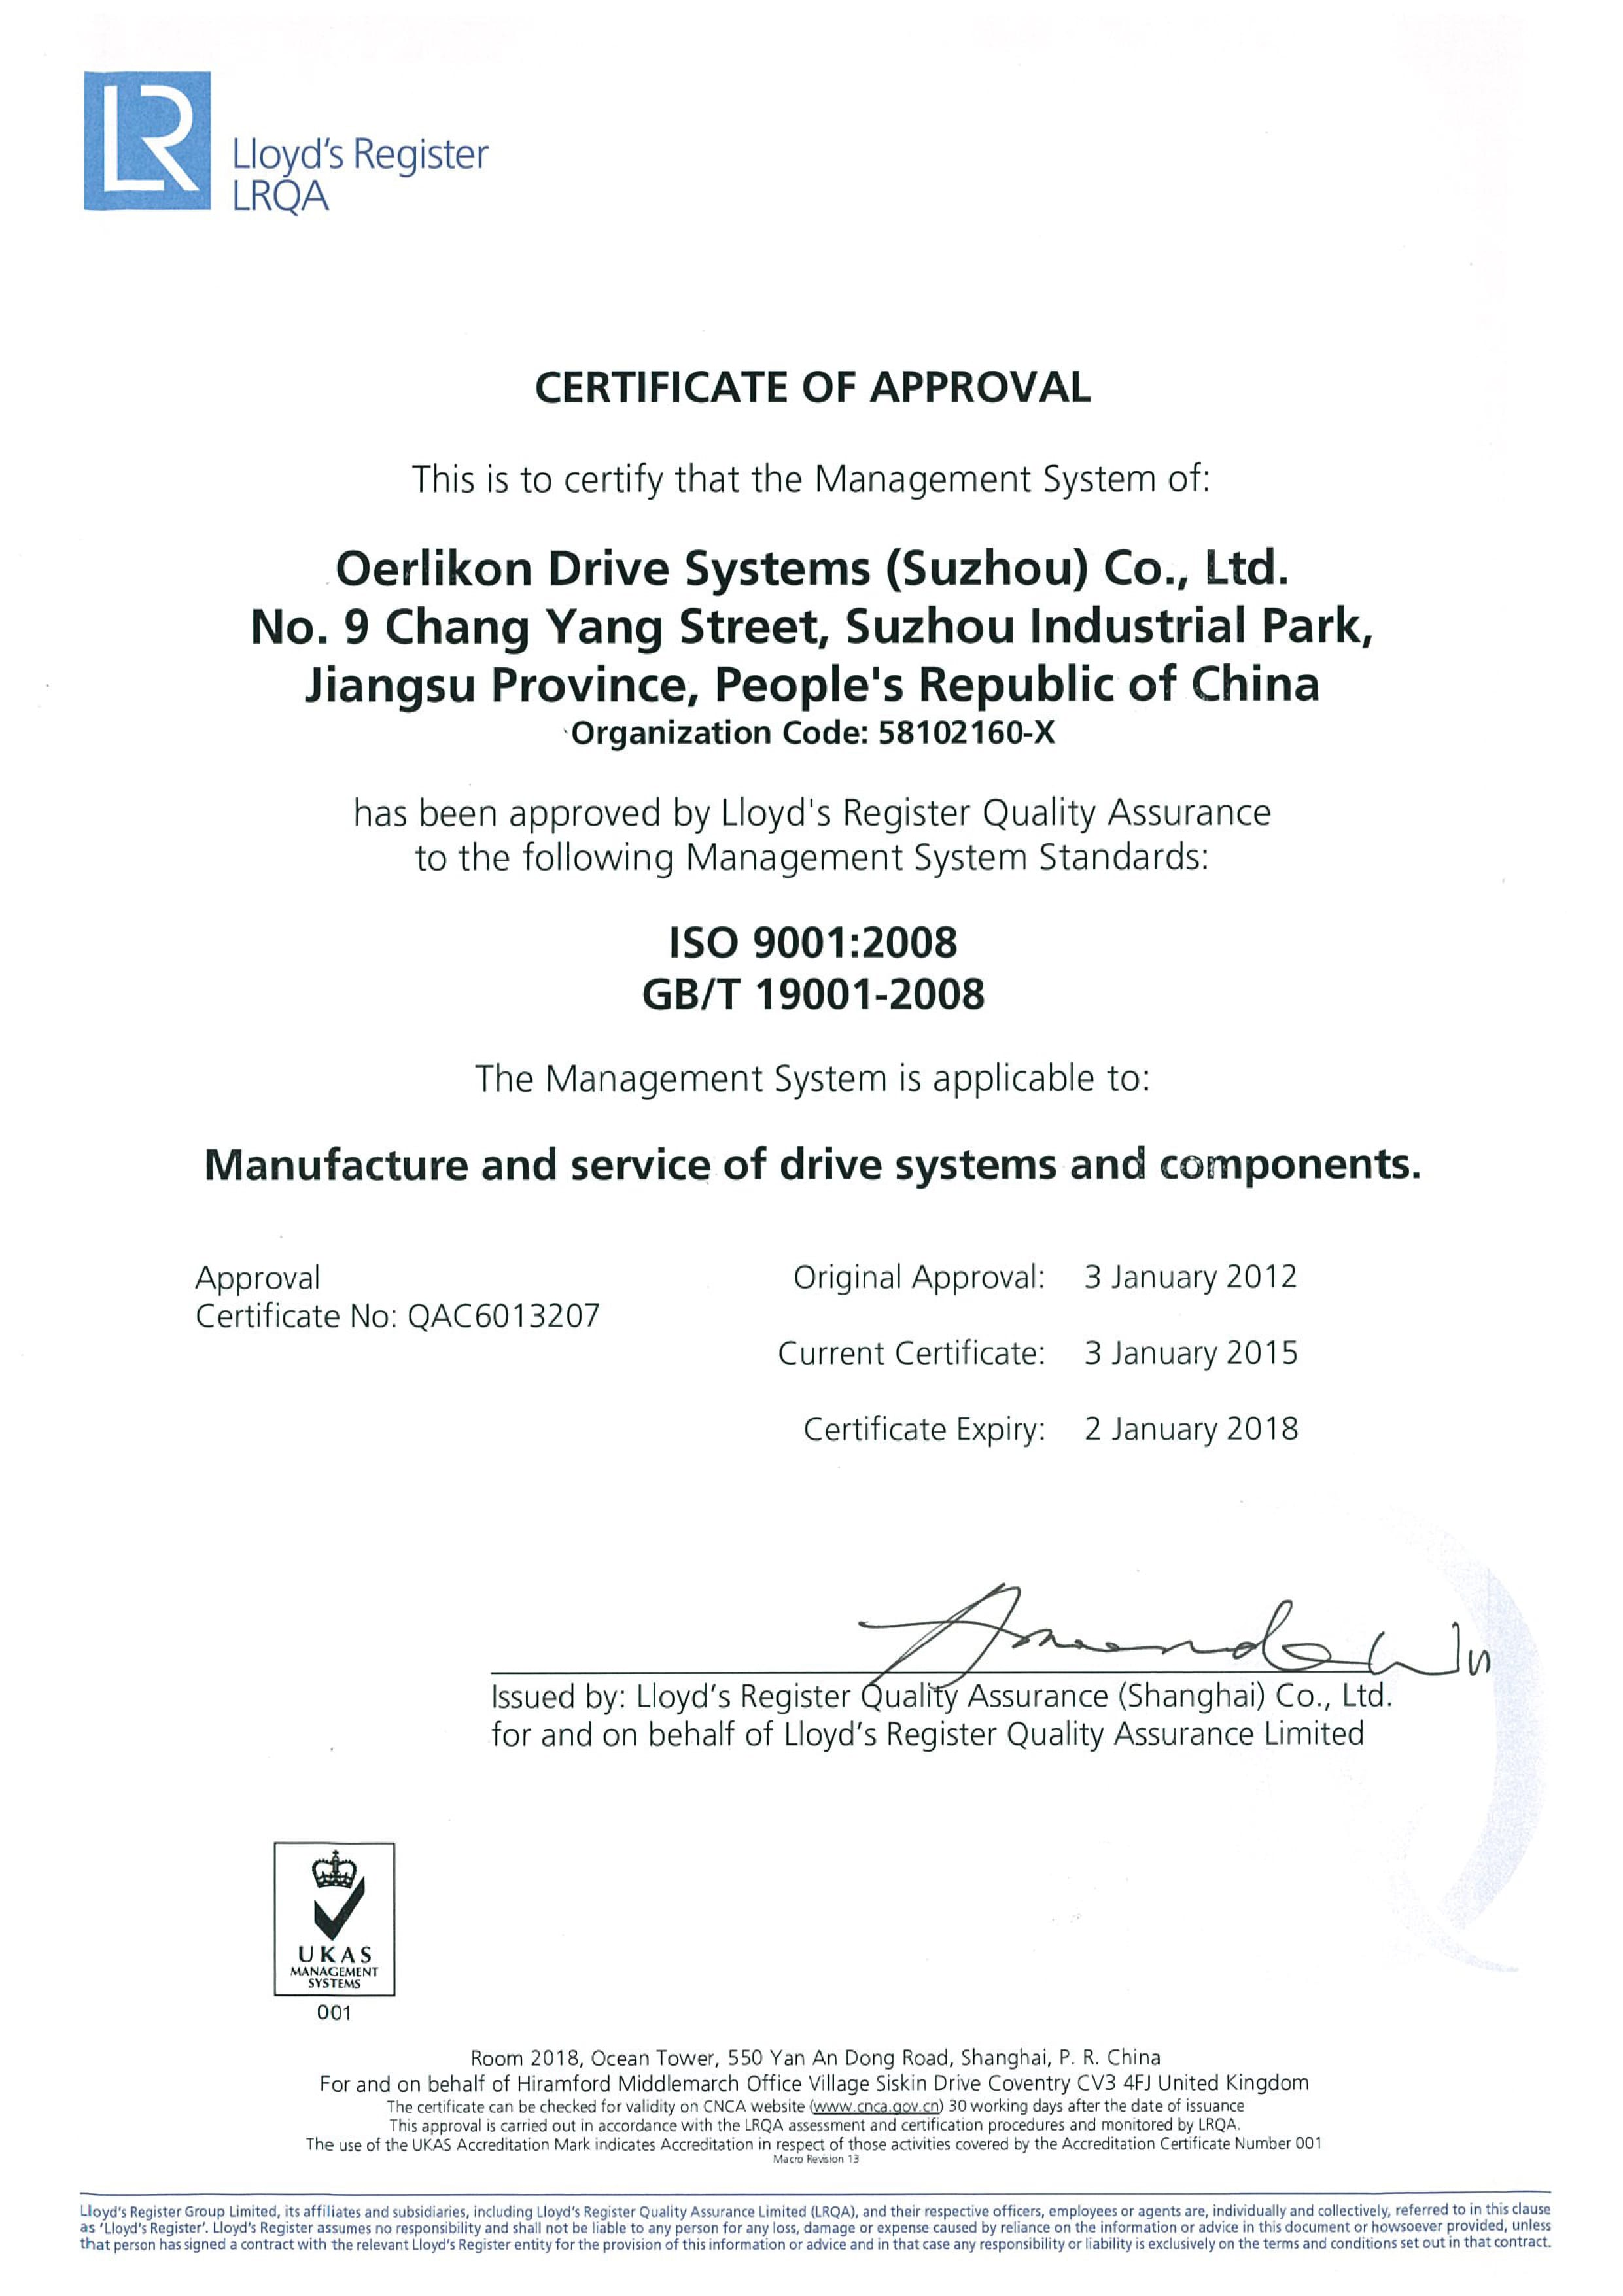 ISO 9001:2008 and GB/T 19001-2008